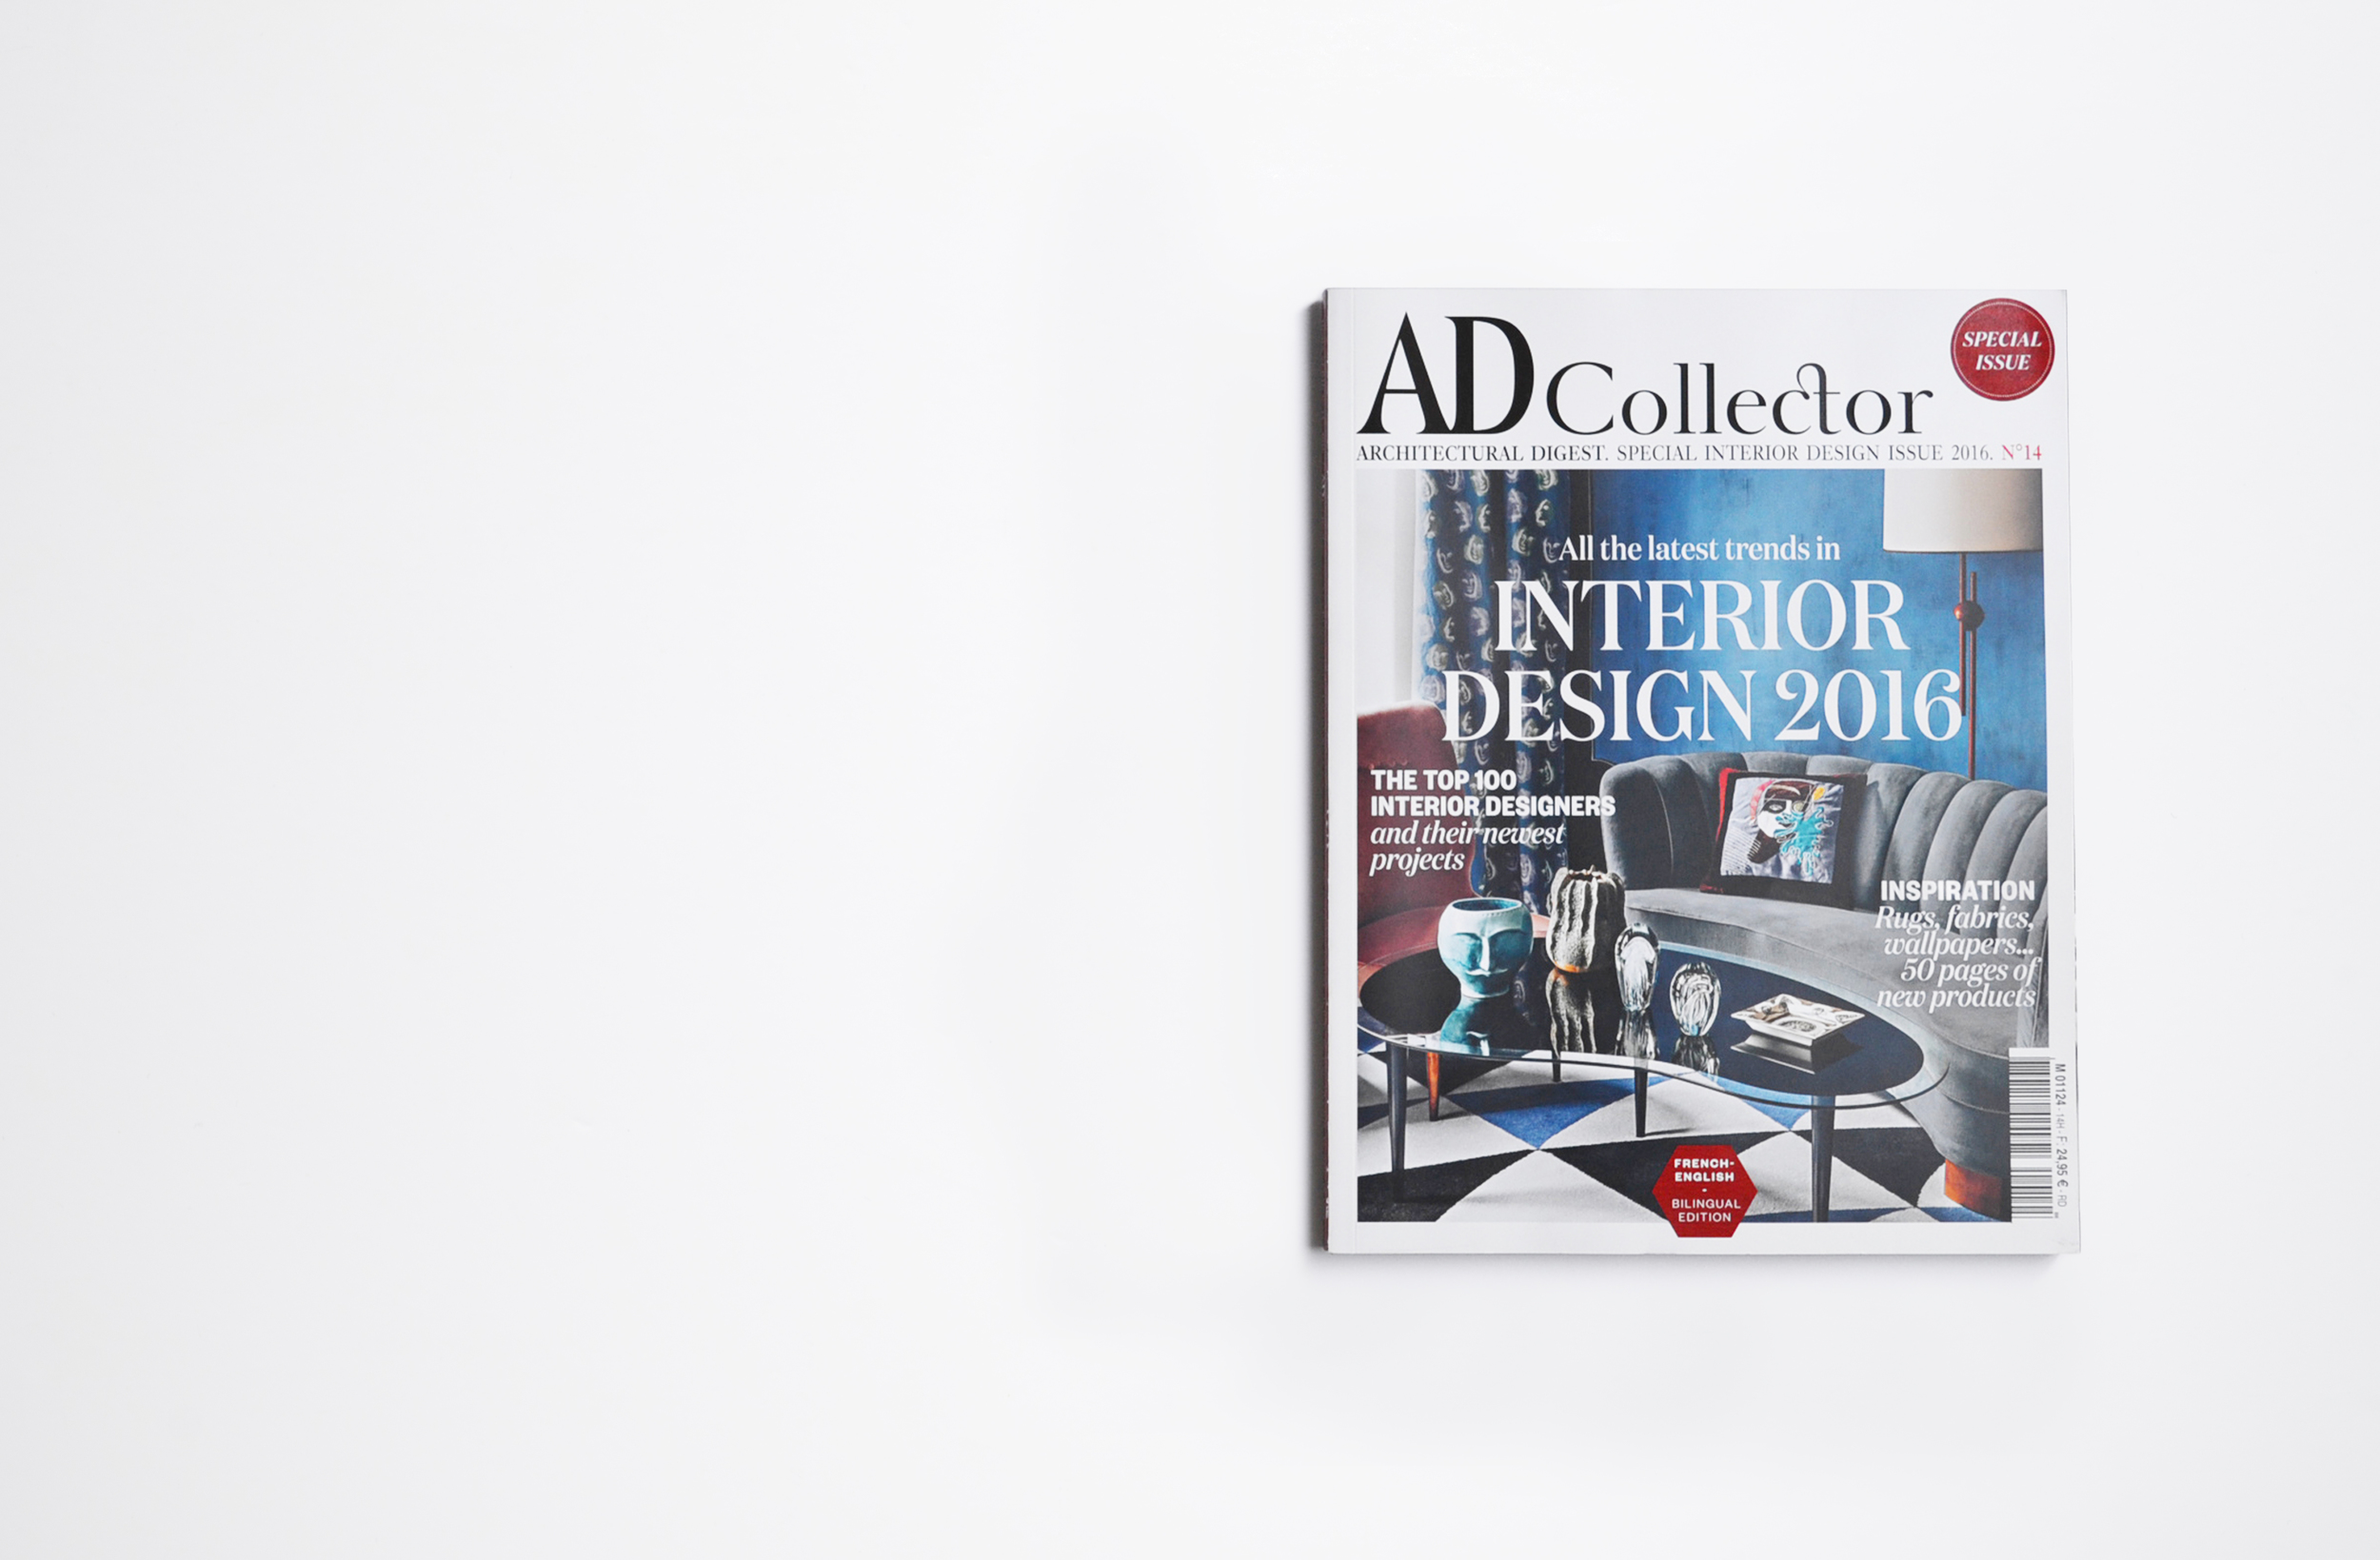 AD Collector 01.jpg